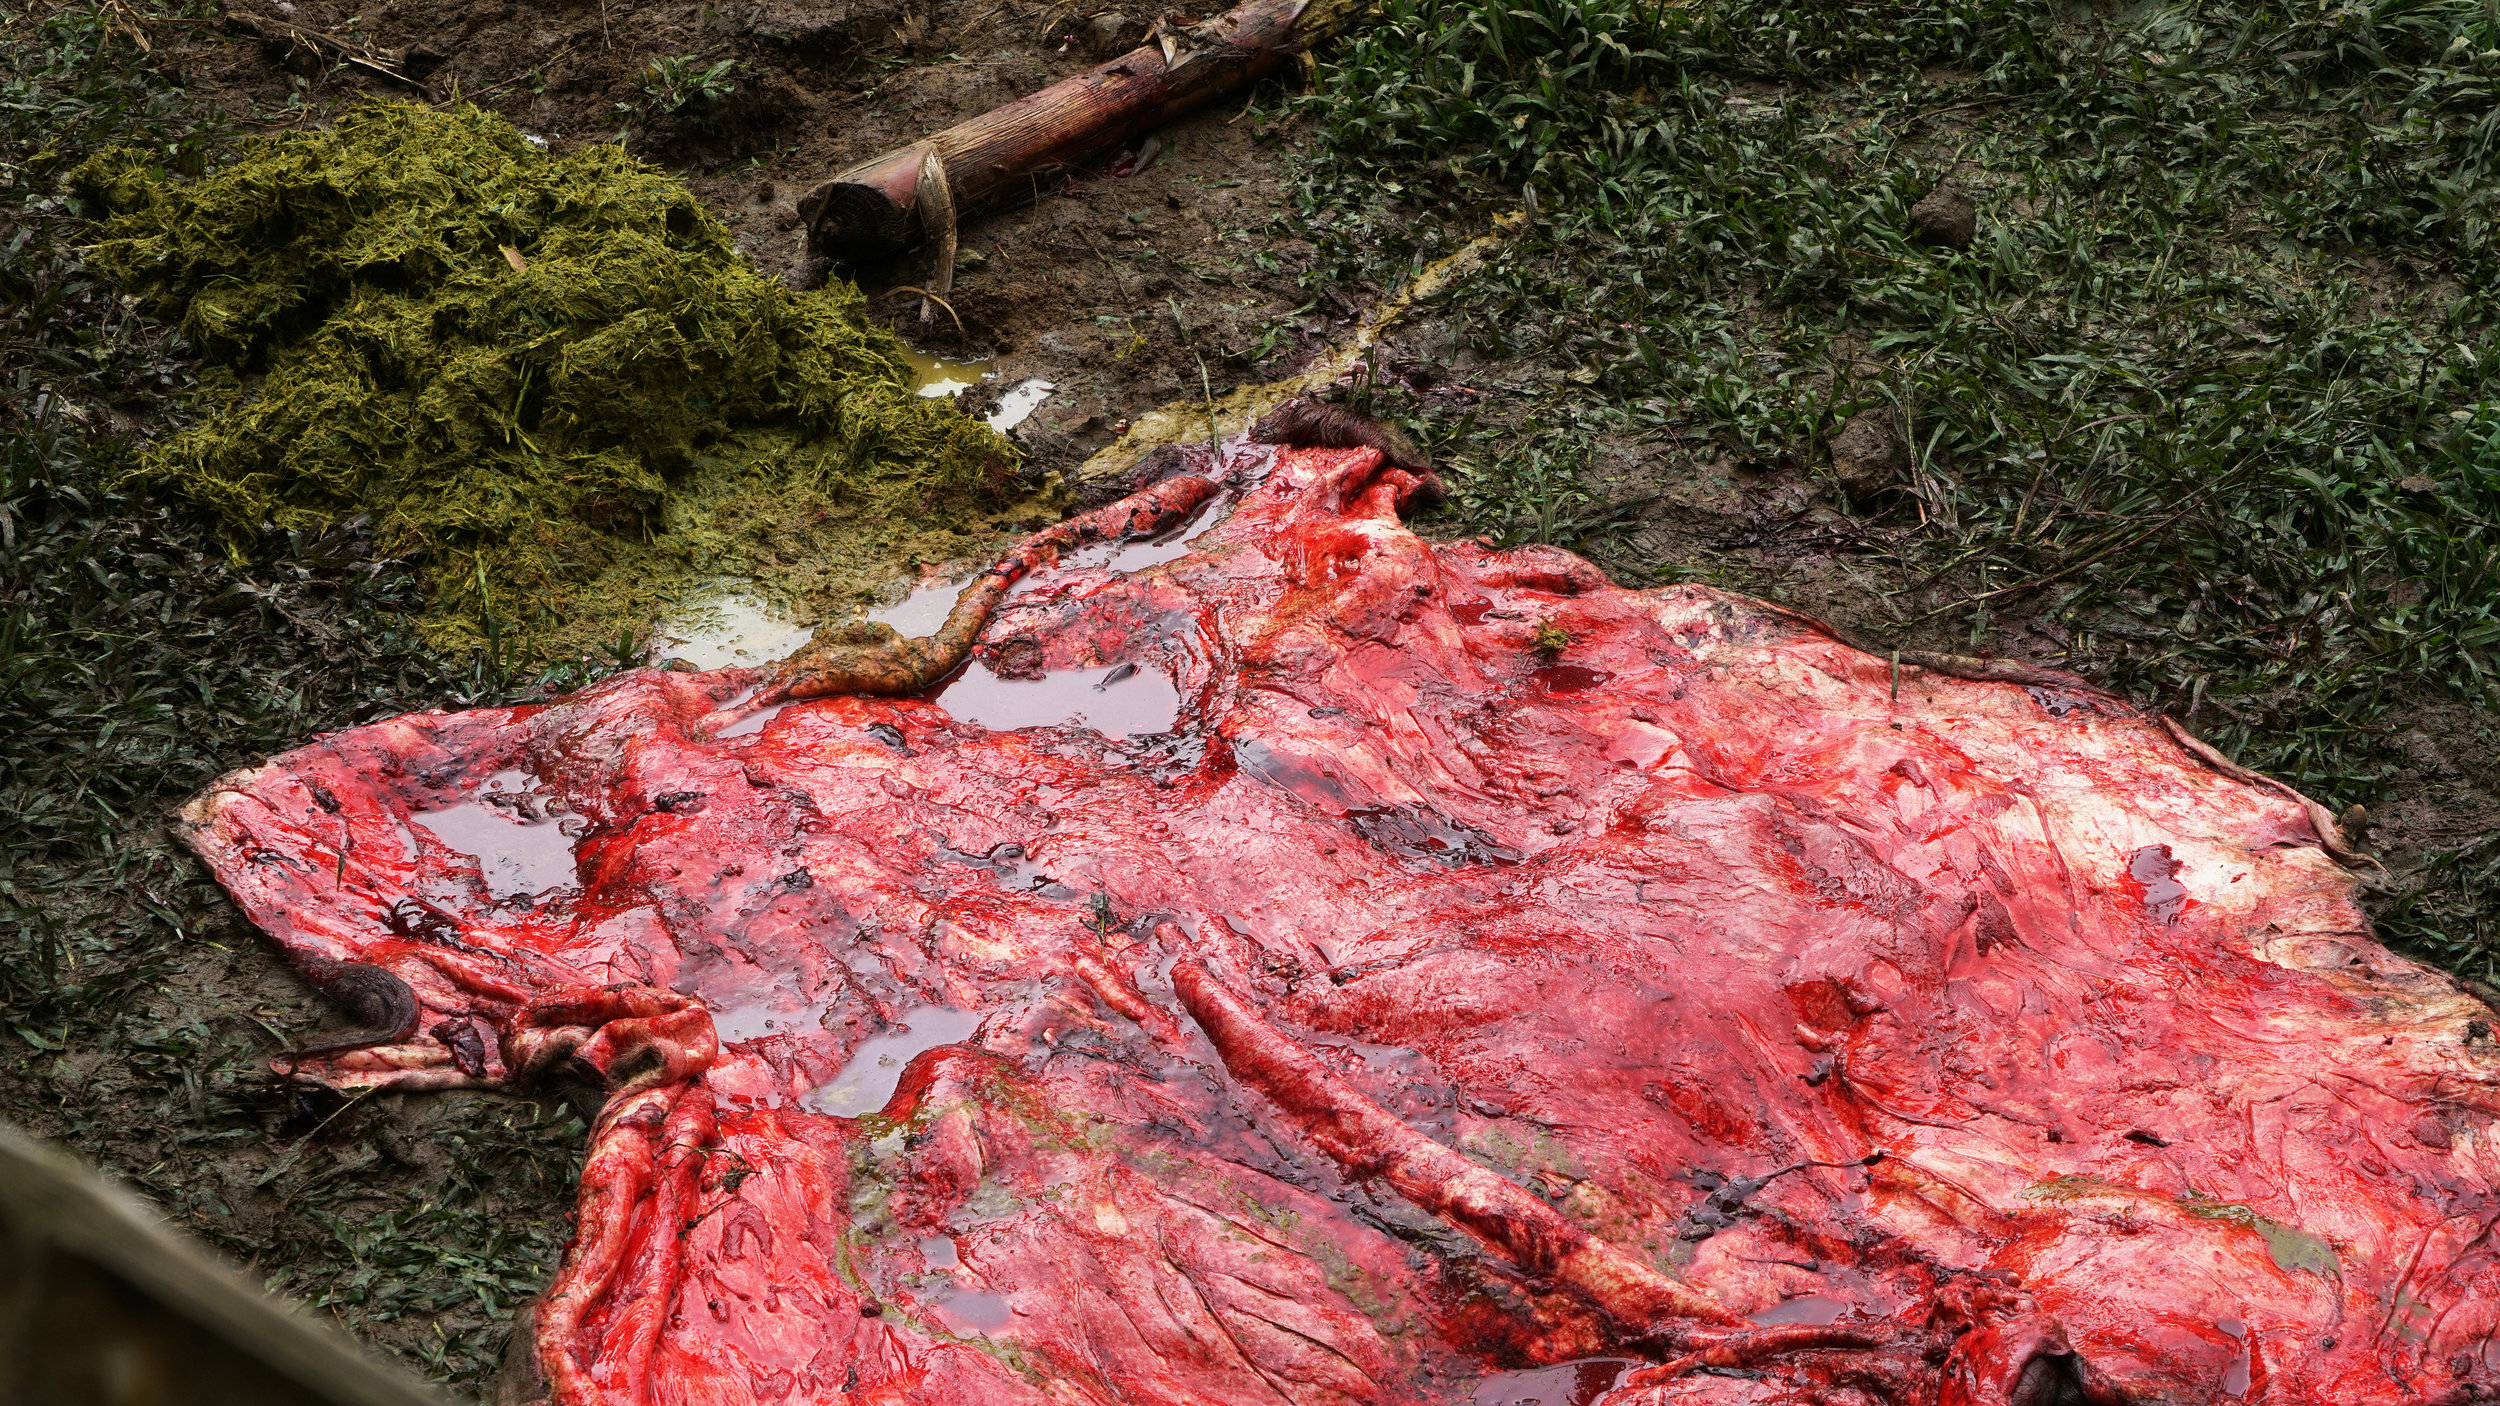 cow blood red_resized.jpg